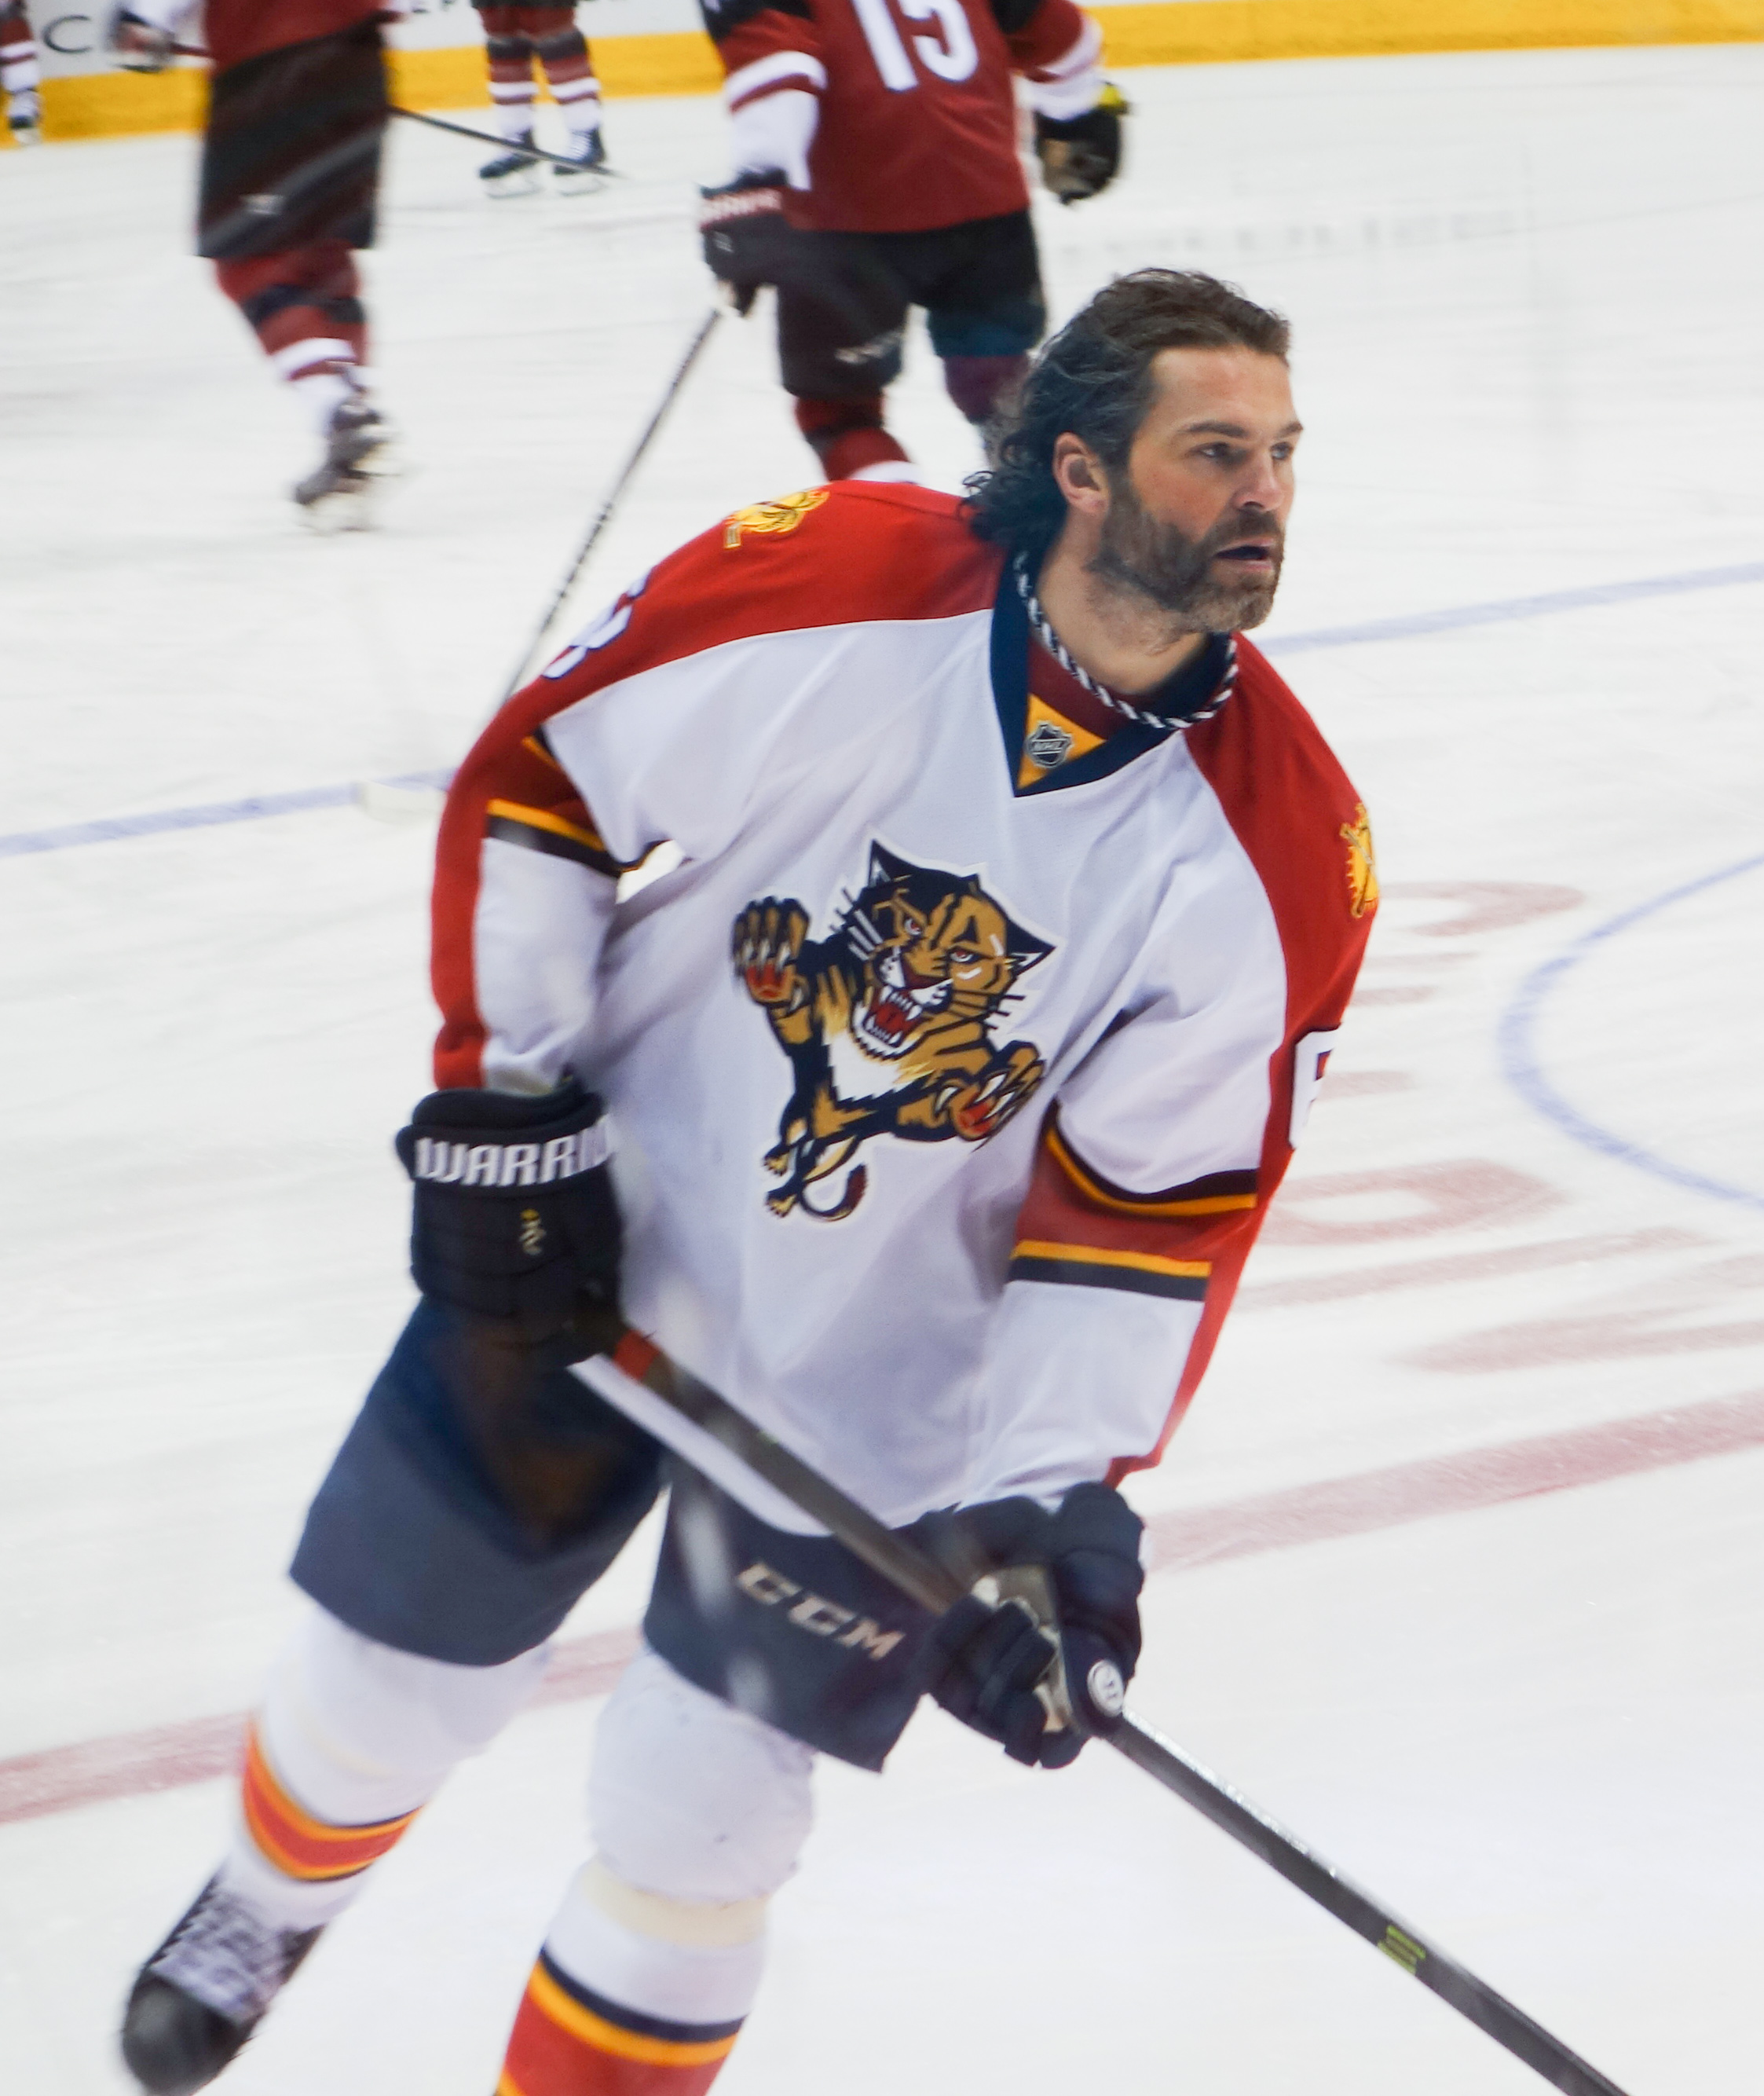 the hockey agenda 2016 jaromir jagr is tied for 2nd in all time career points